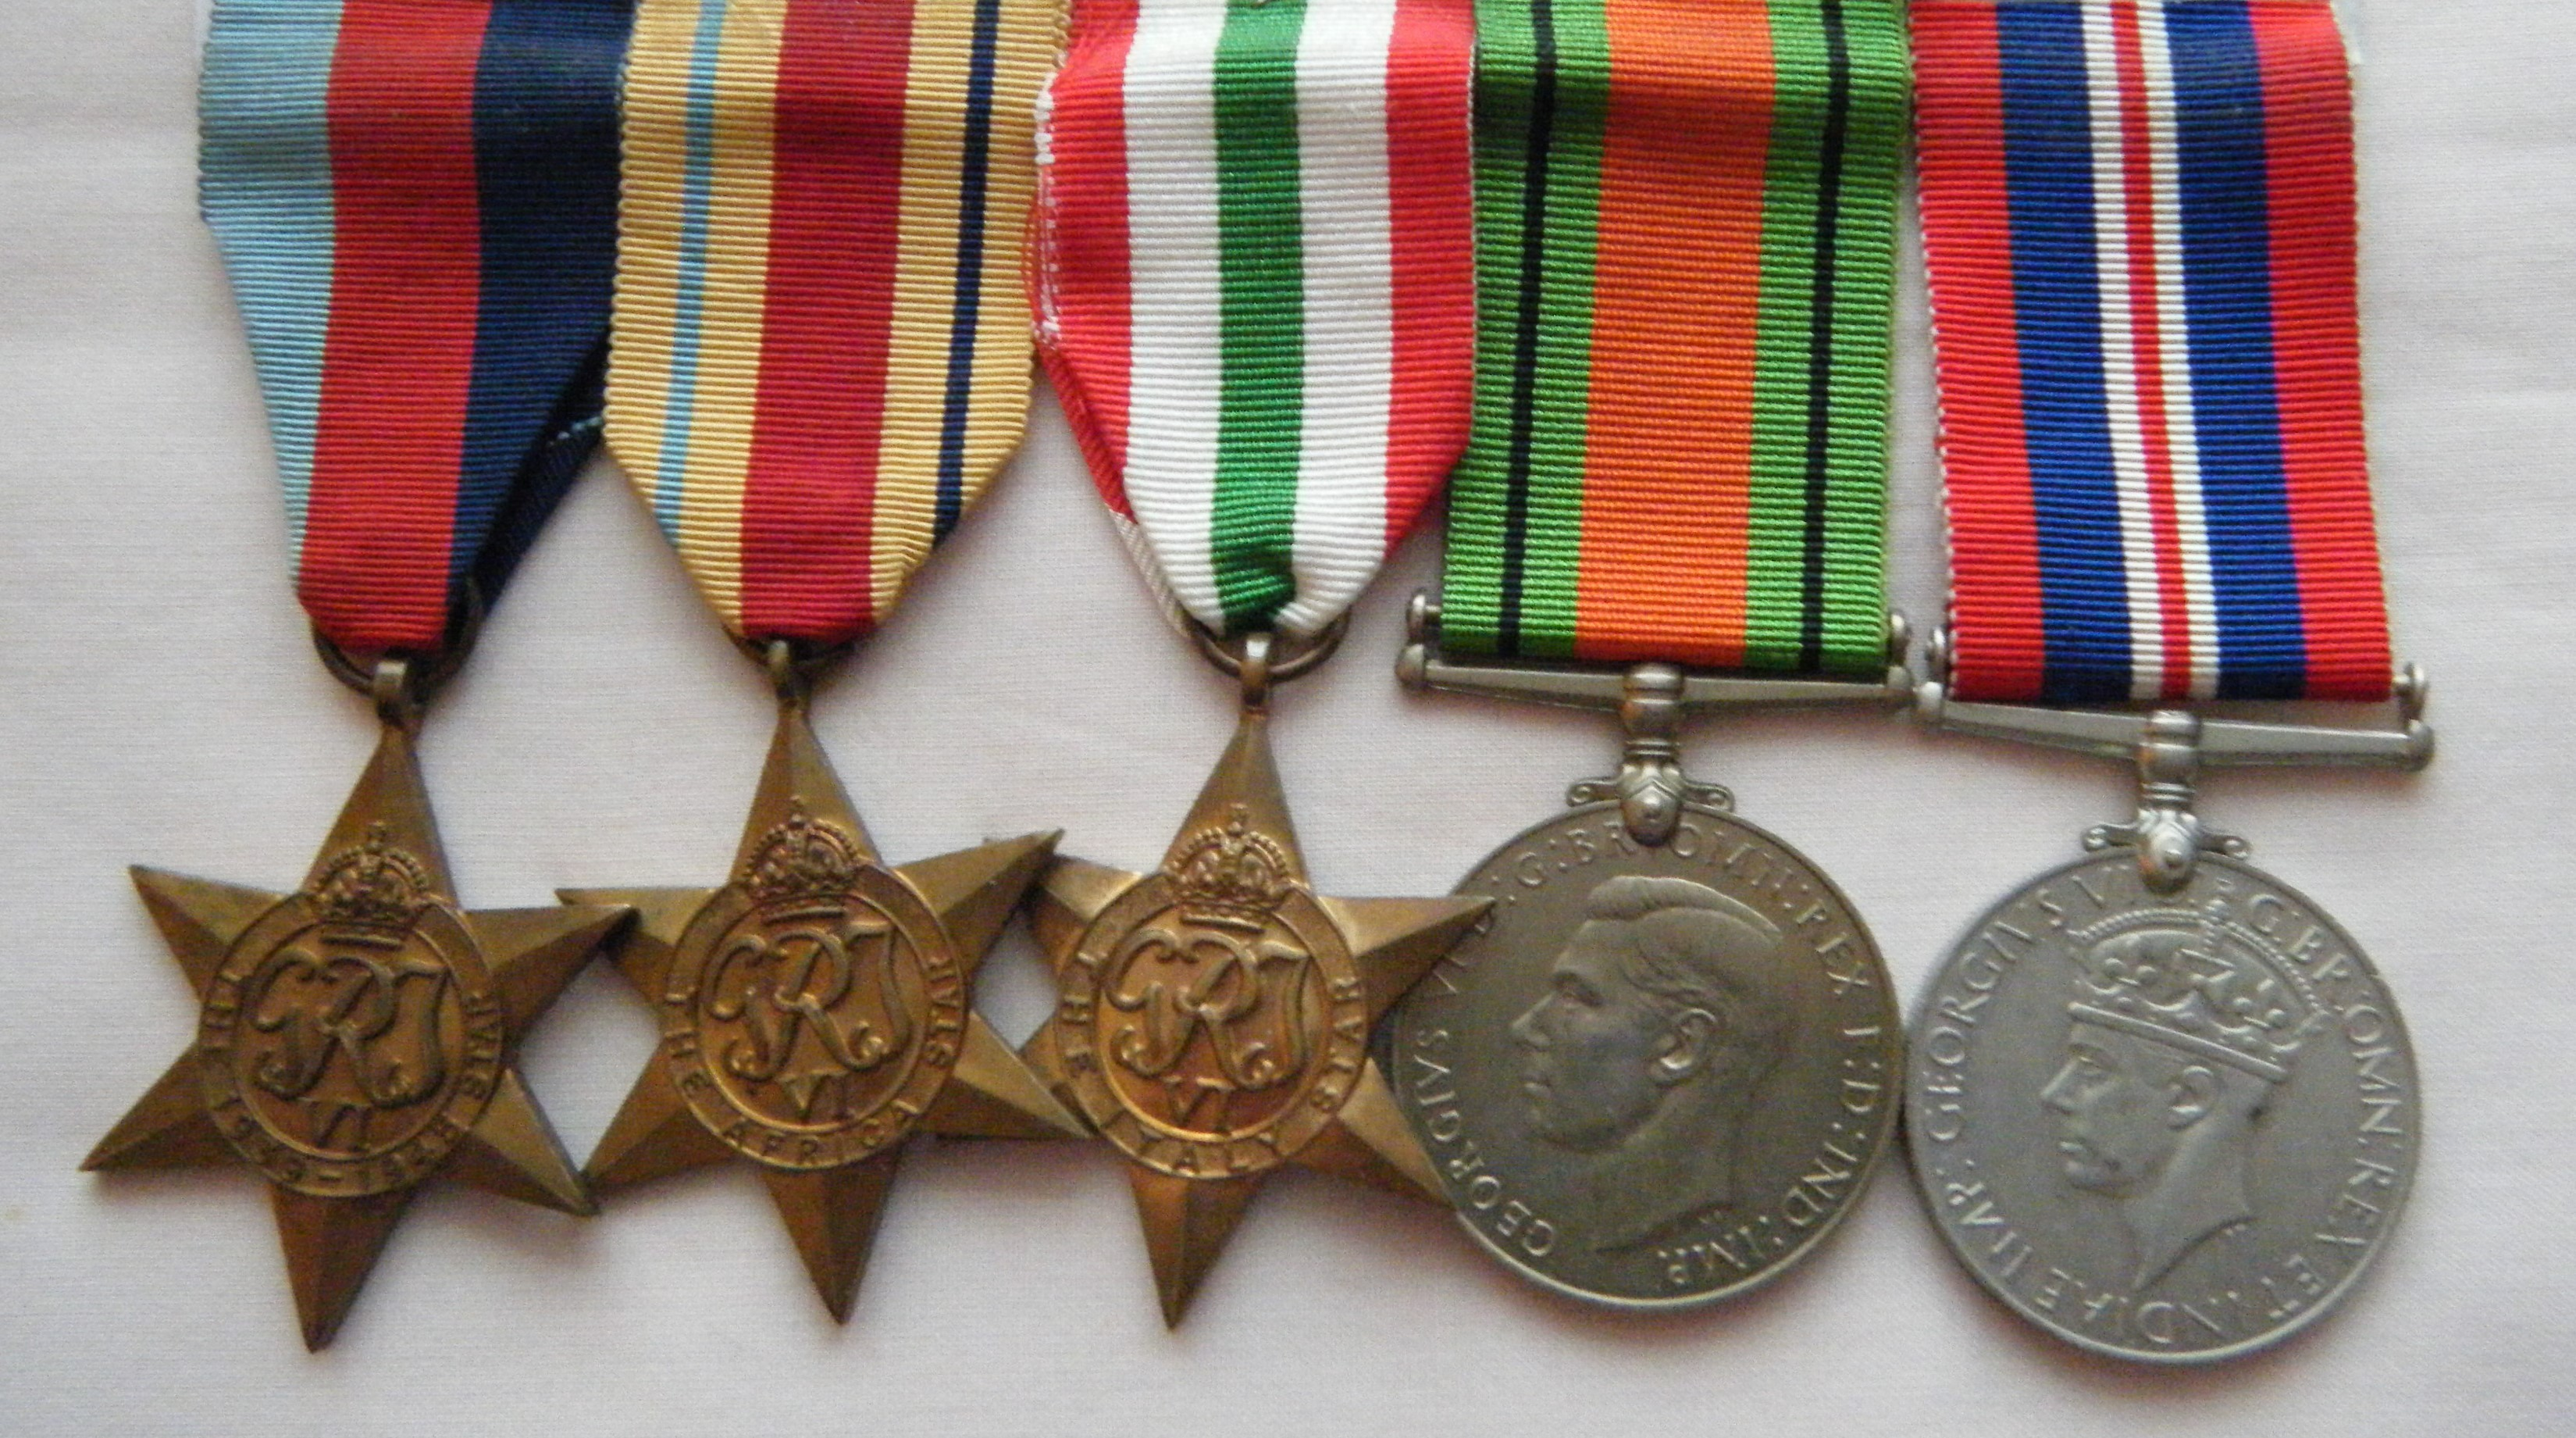 FIVE.  Gnr. S.A. Marino, Royal Artillery (wounded in action in North Africa on 23/1/41).